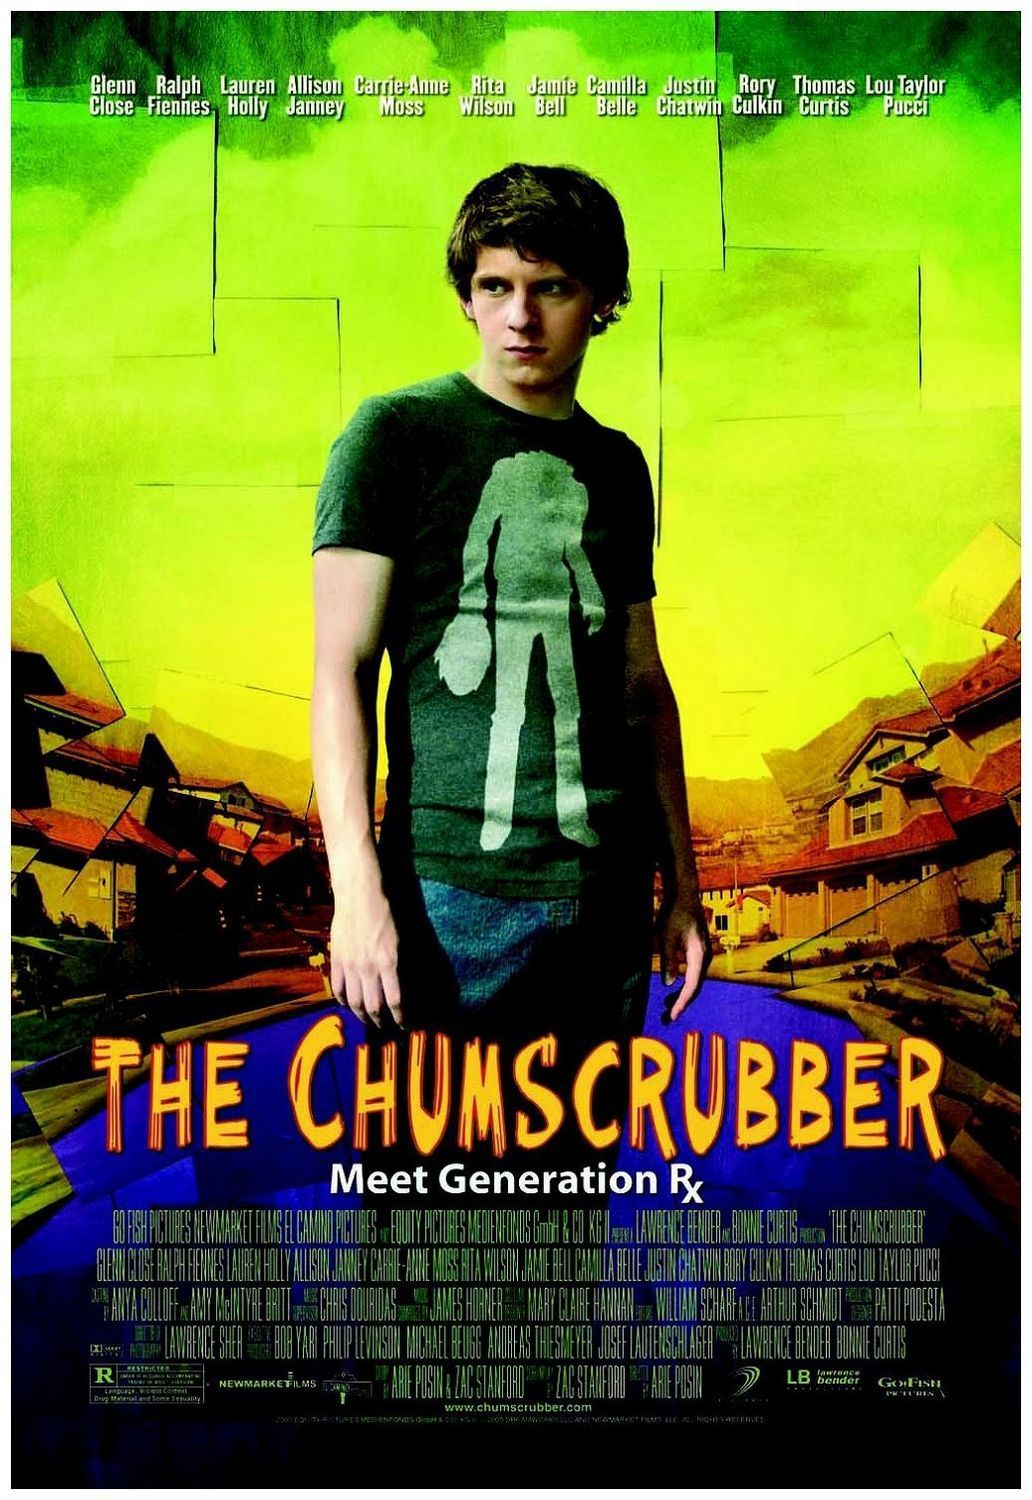 the chumscrubber images the chumscrubber poster hd and the chumscrubber images the chumscrubber poster hd and background photos